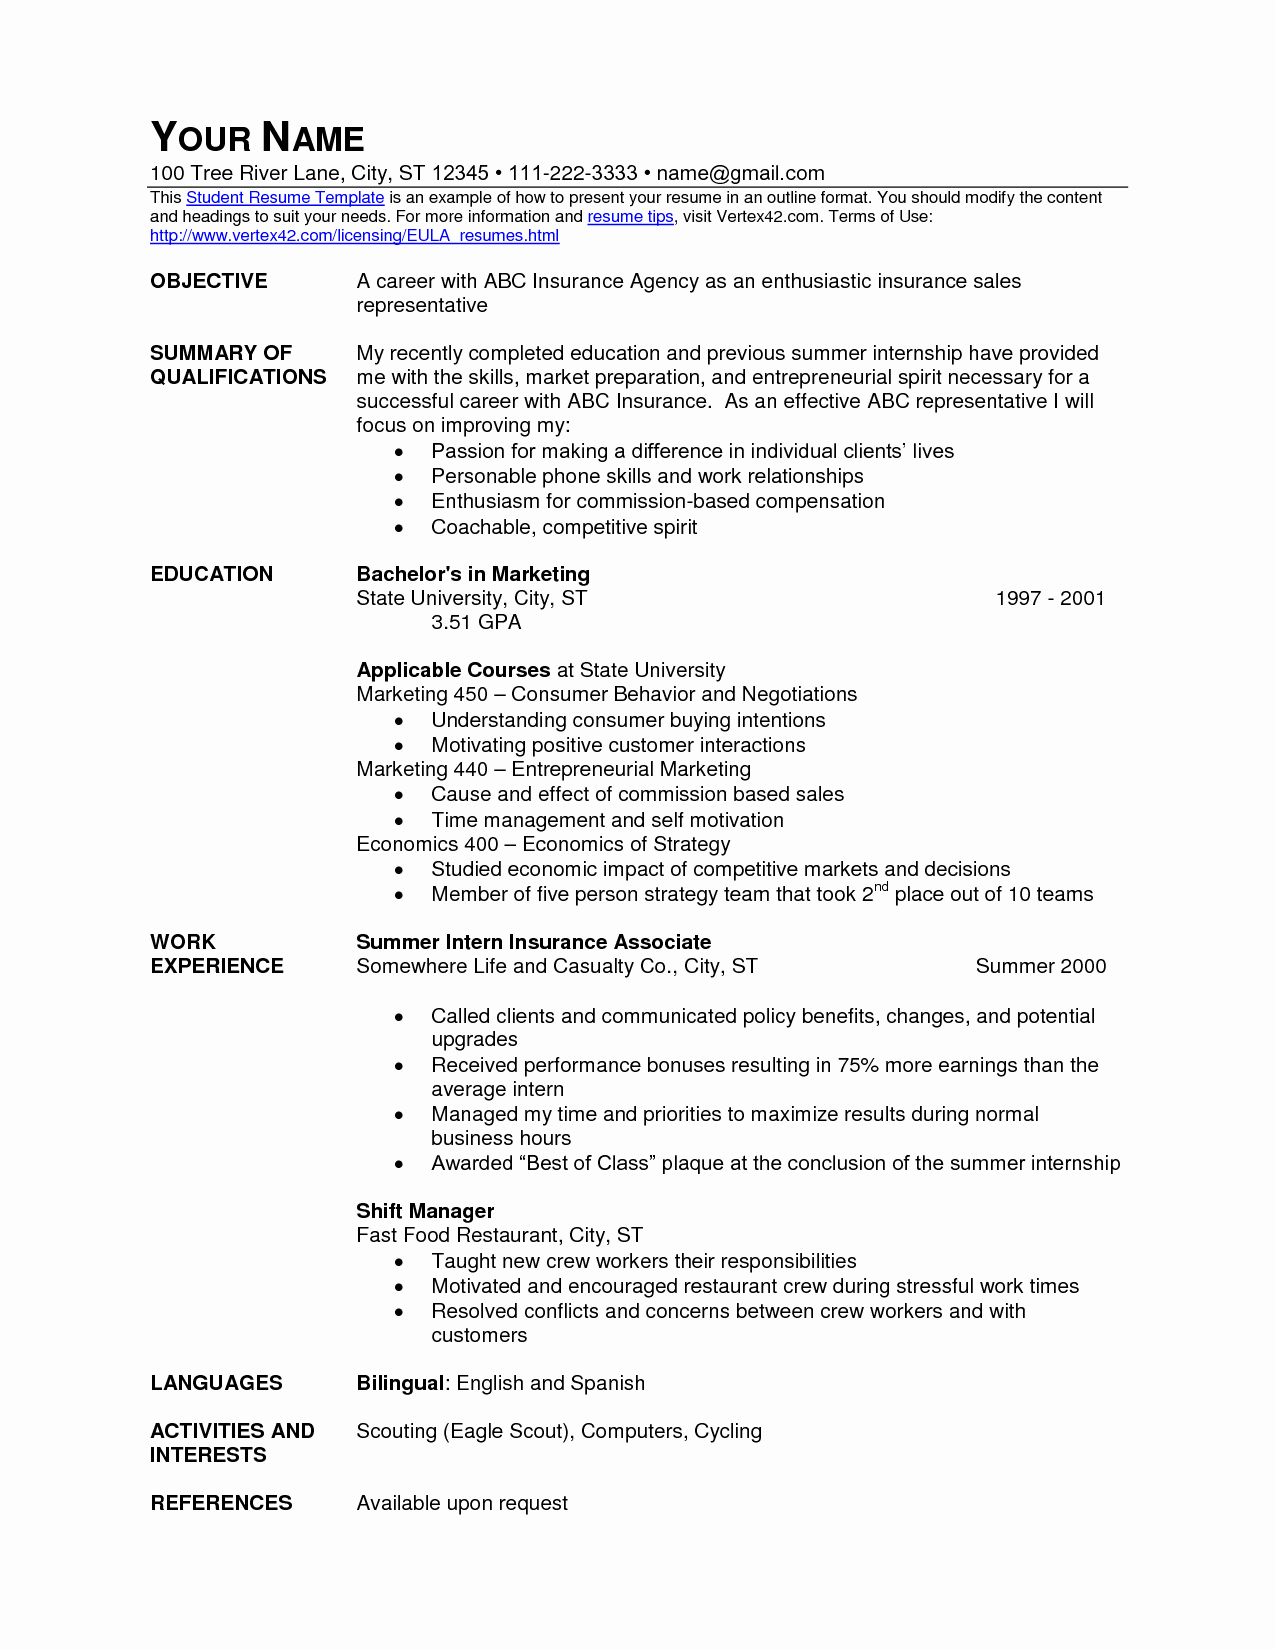 Food Service Worker Resume Skills